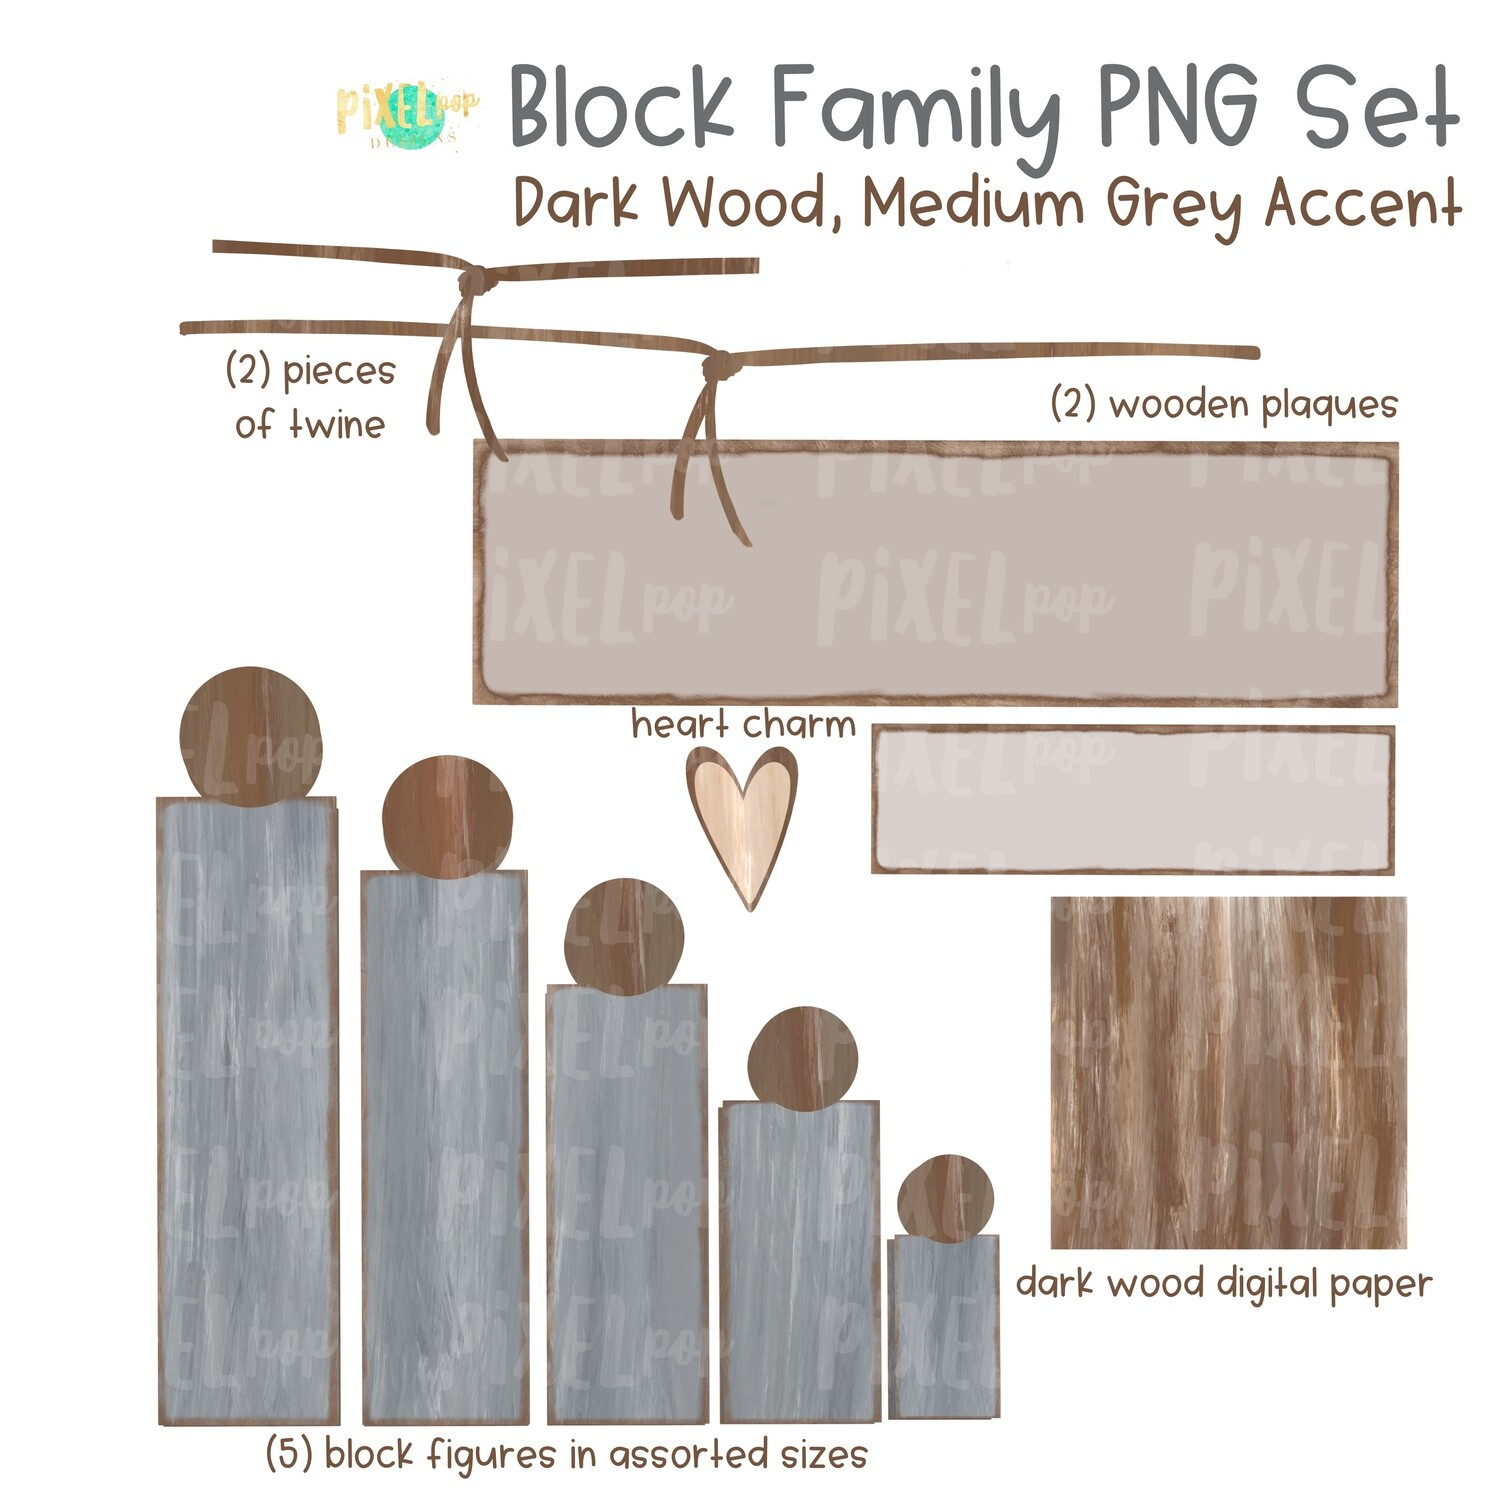 Wooden Block Family PNG Set Dark Wood Medium Grey Accents with Accessories | Family Portrait Art | Wooden Blocks | Family Design